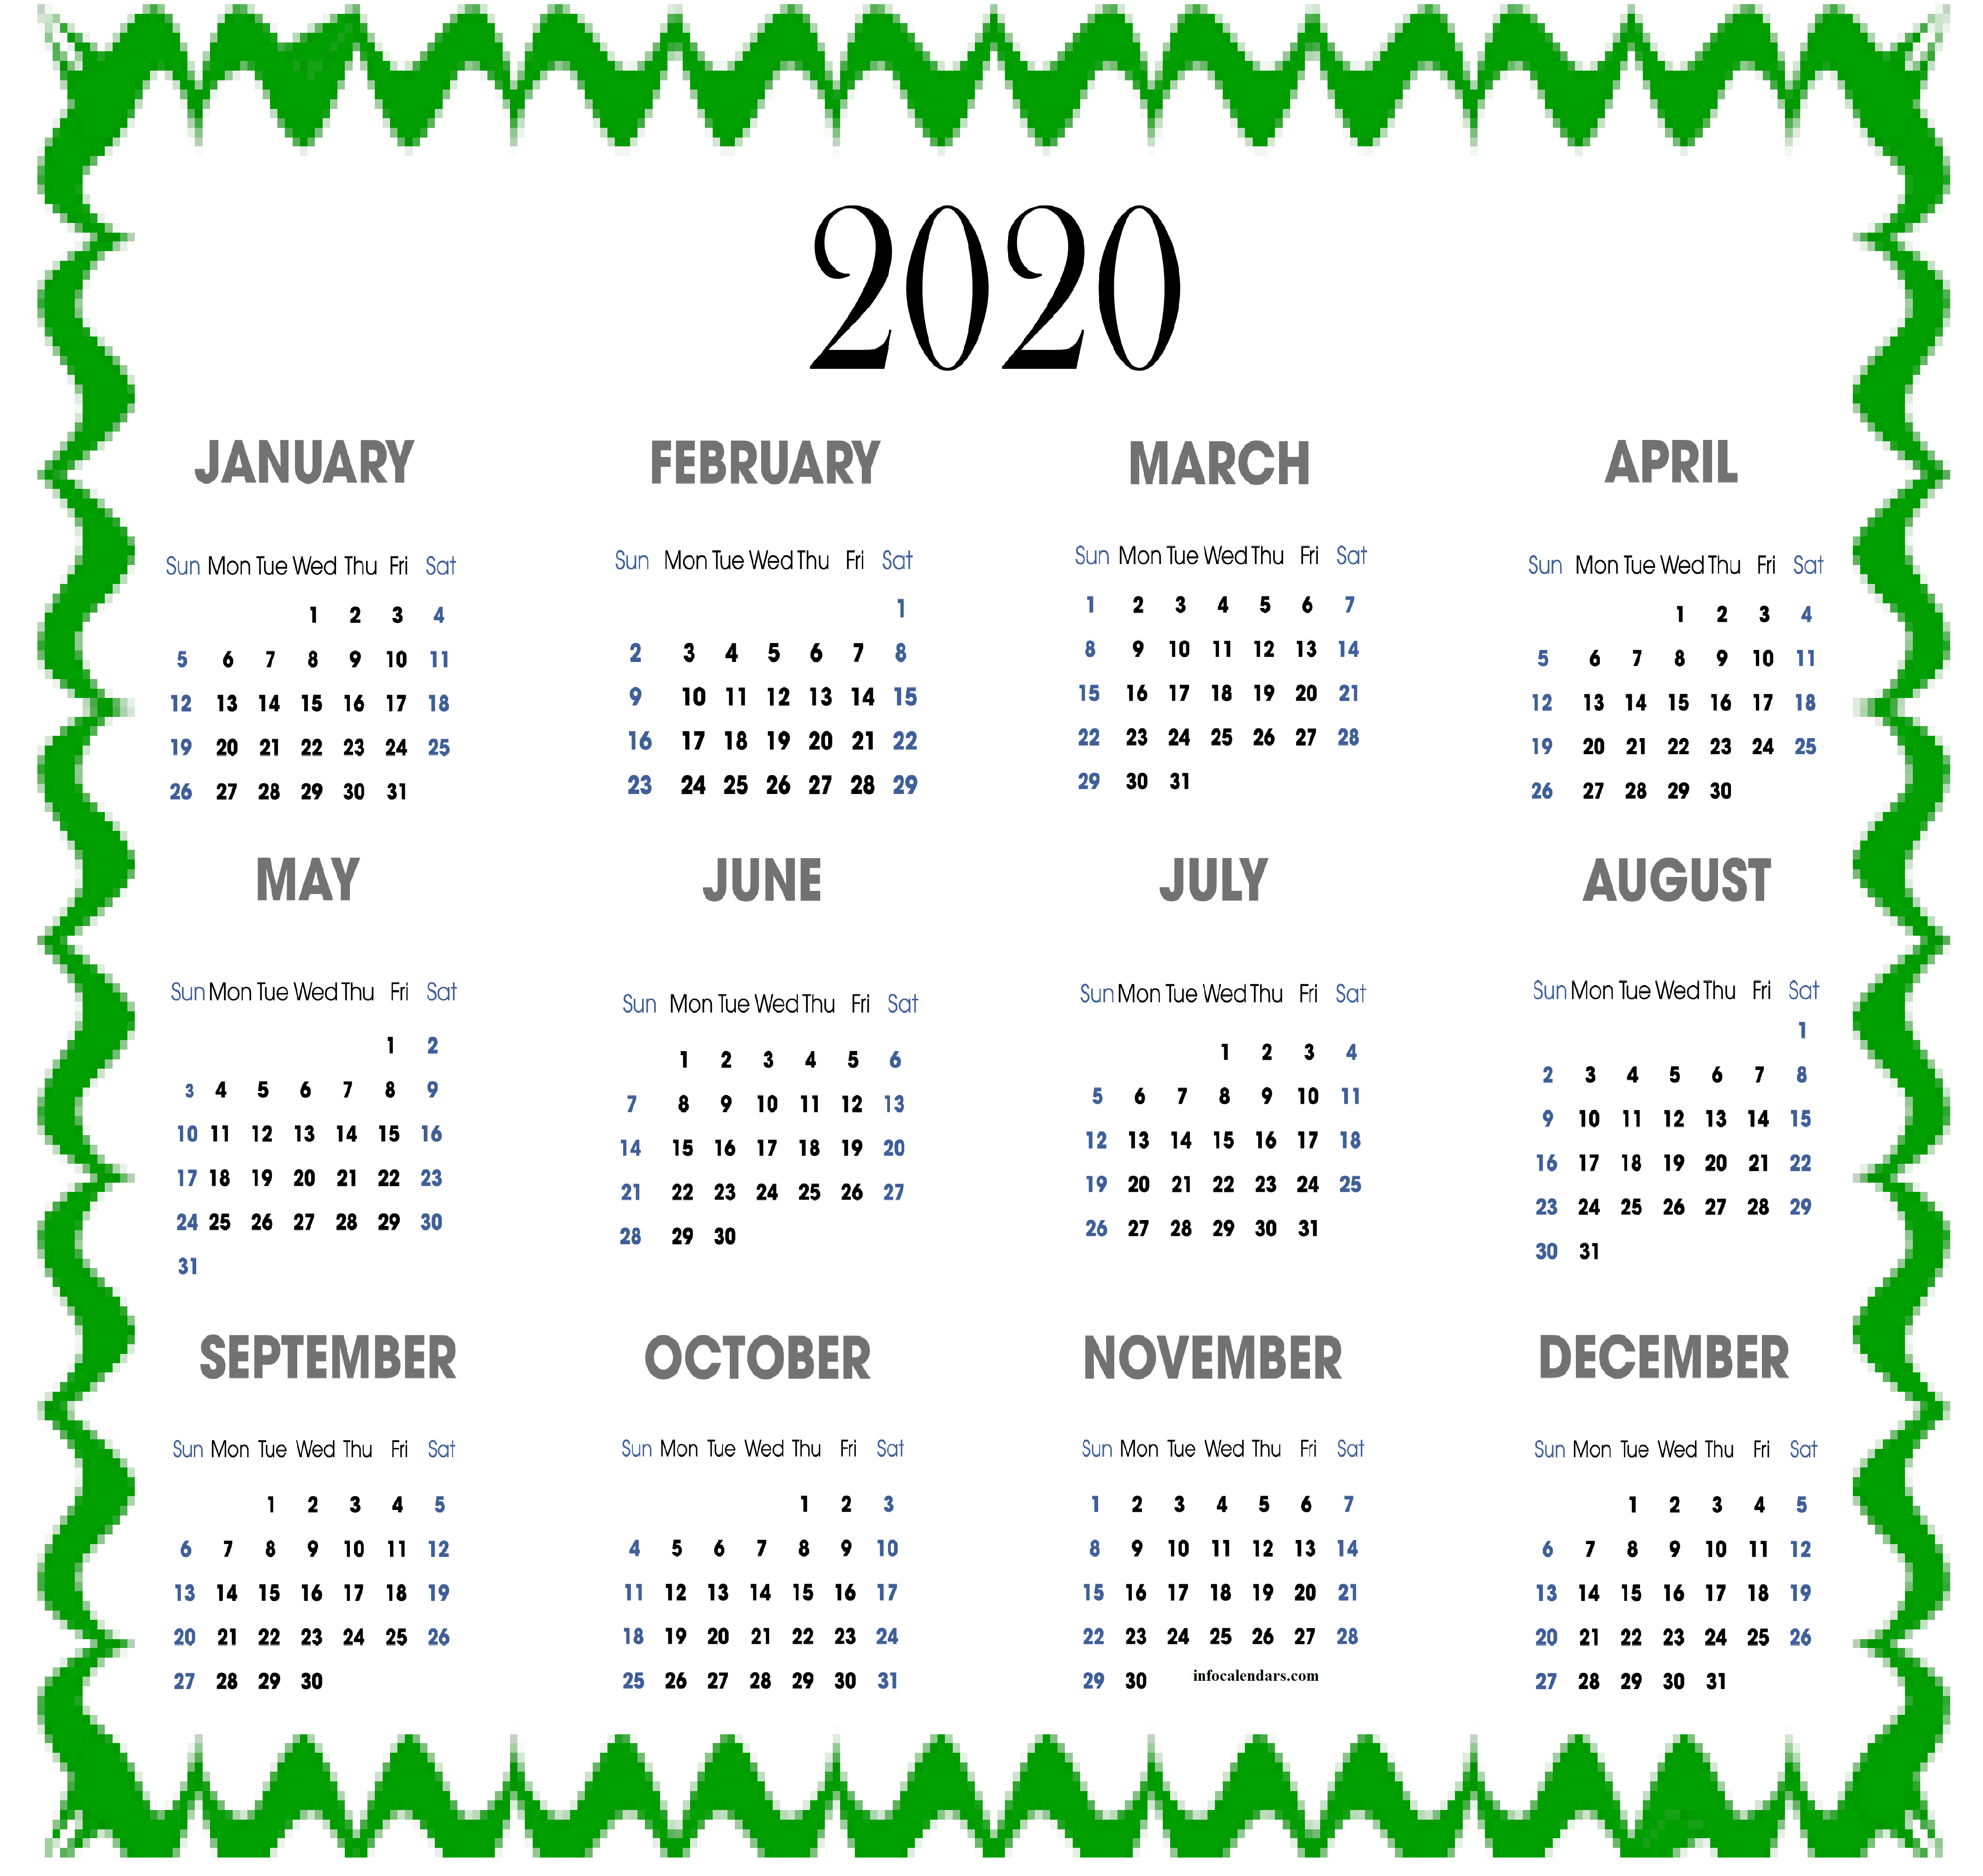 2020 Quarterly Calendar Lunar